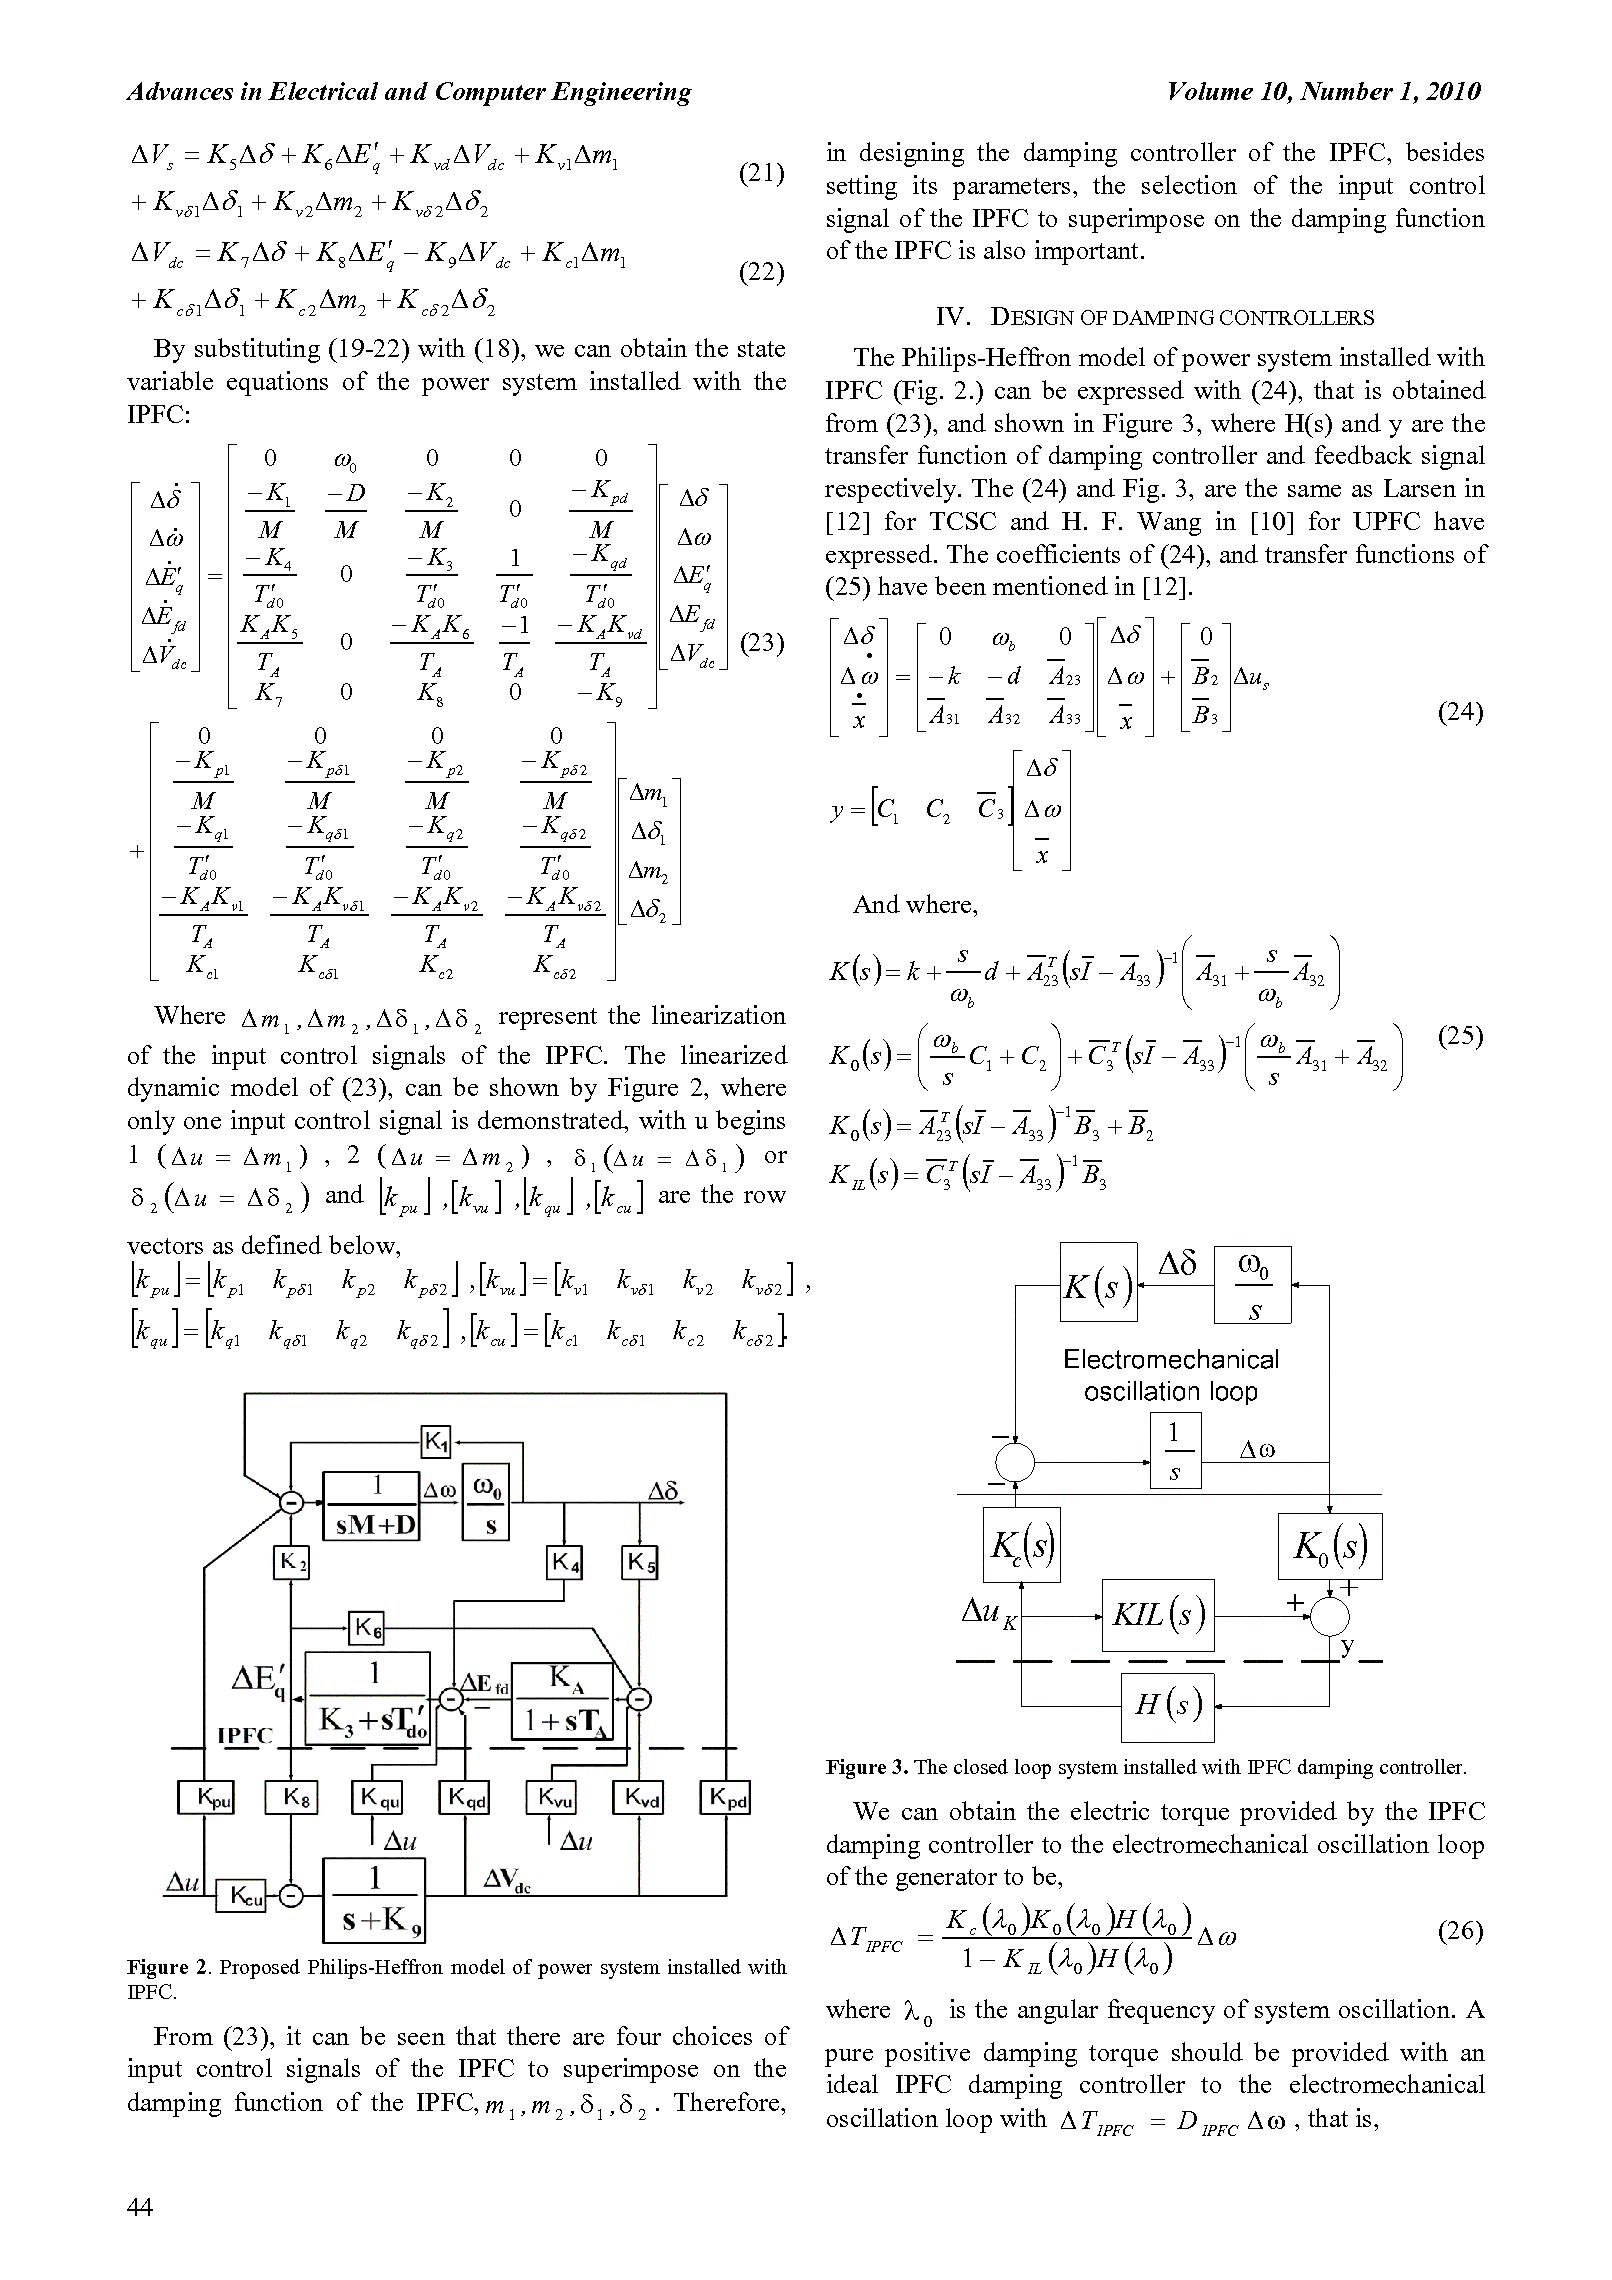 PDF Quickview for paper with DOI:10.4316/AECE.2010.01007